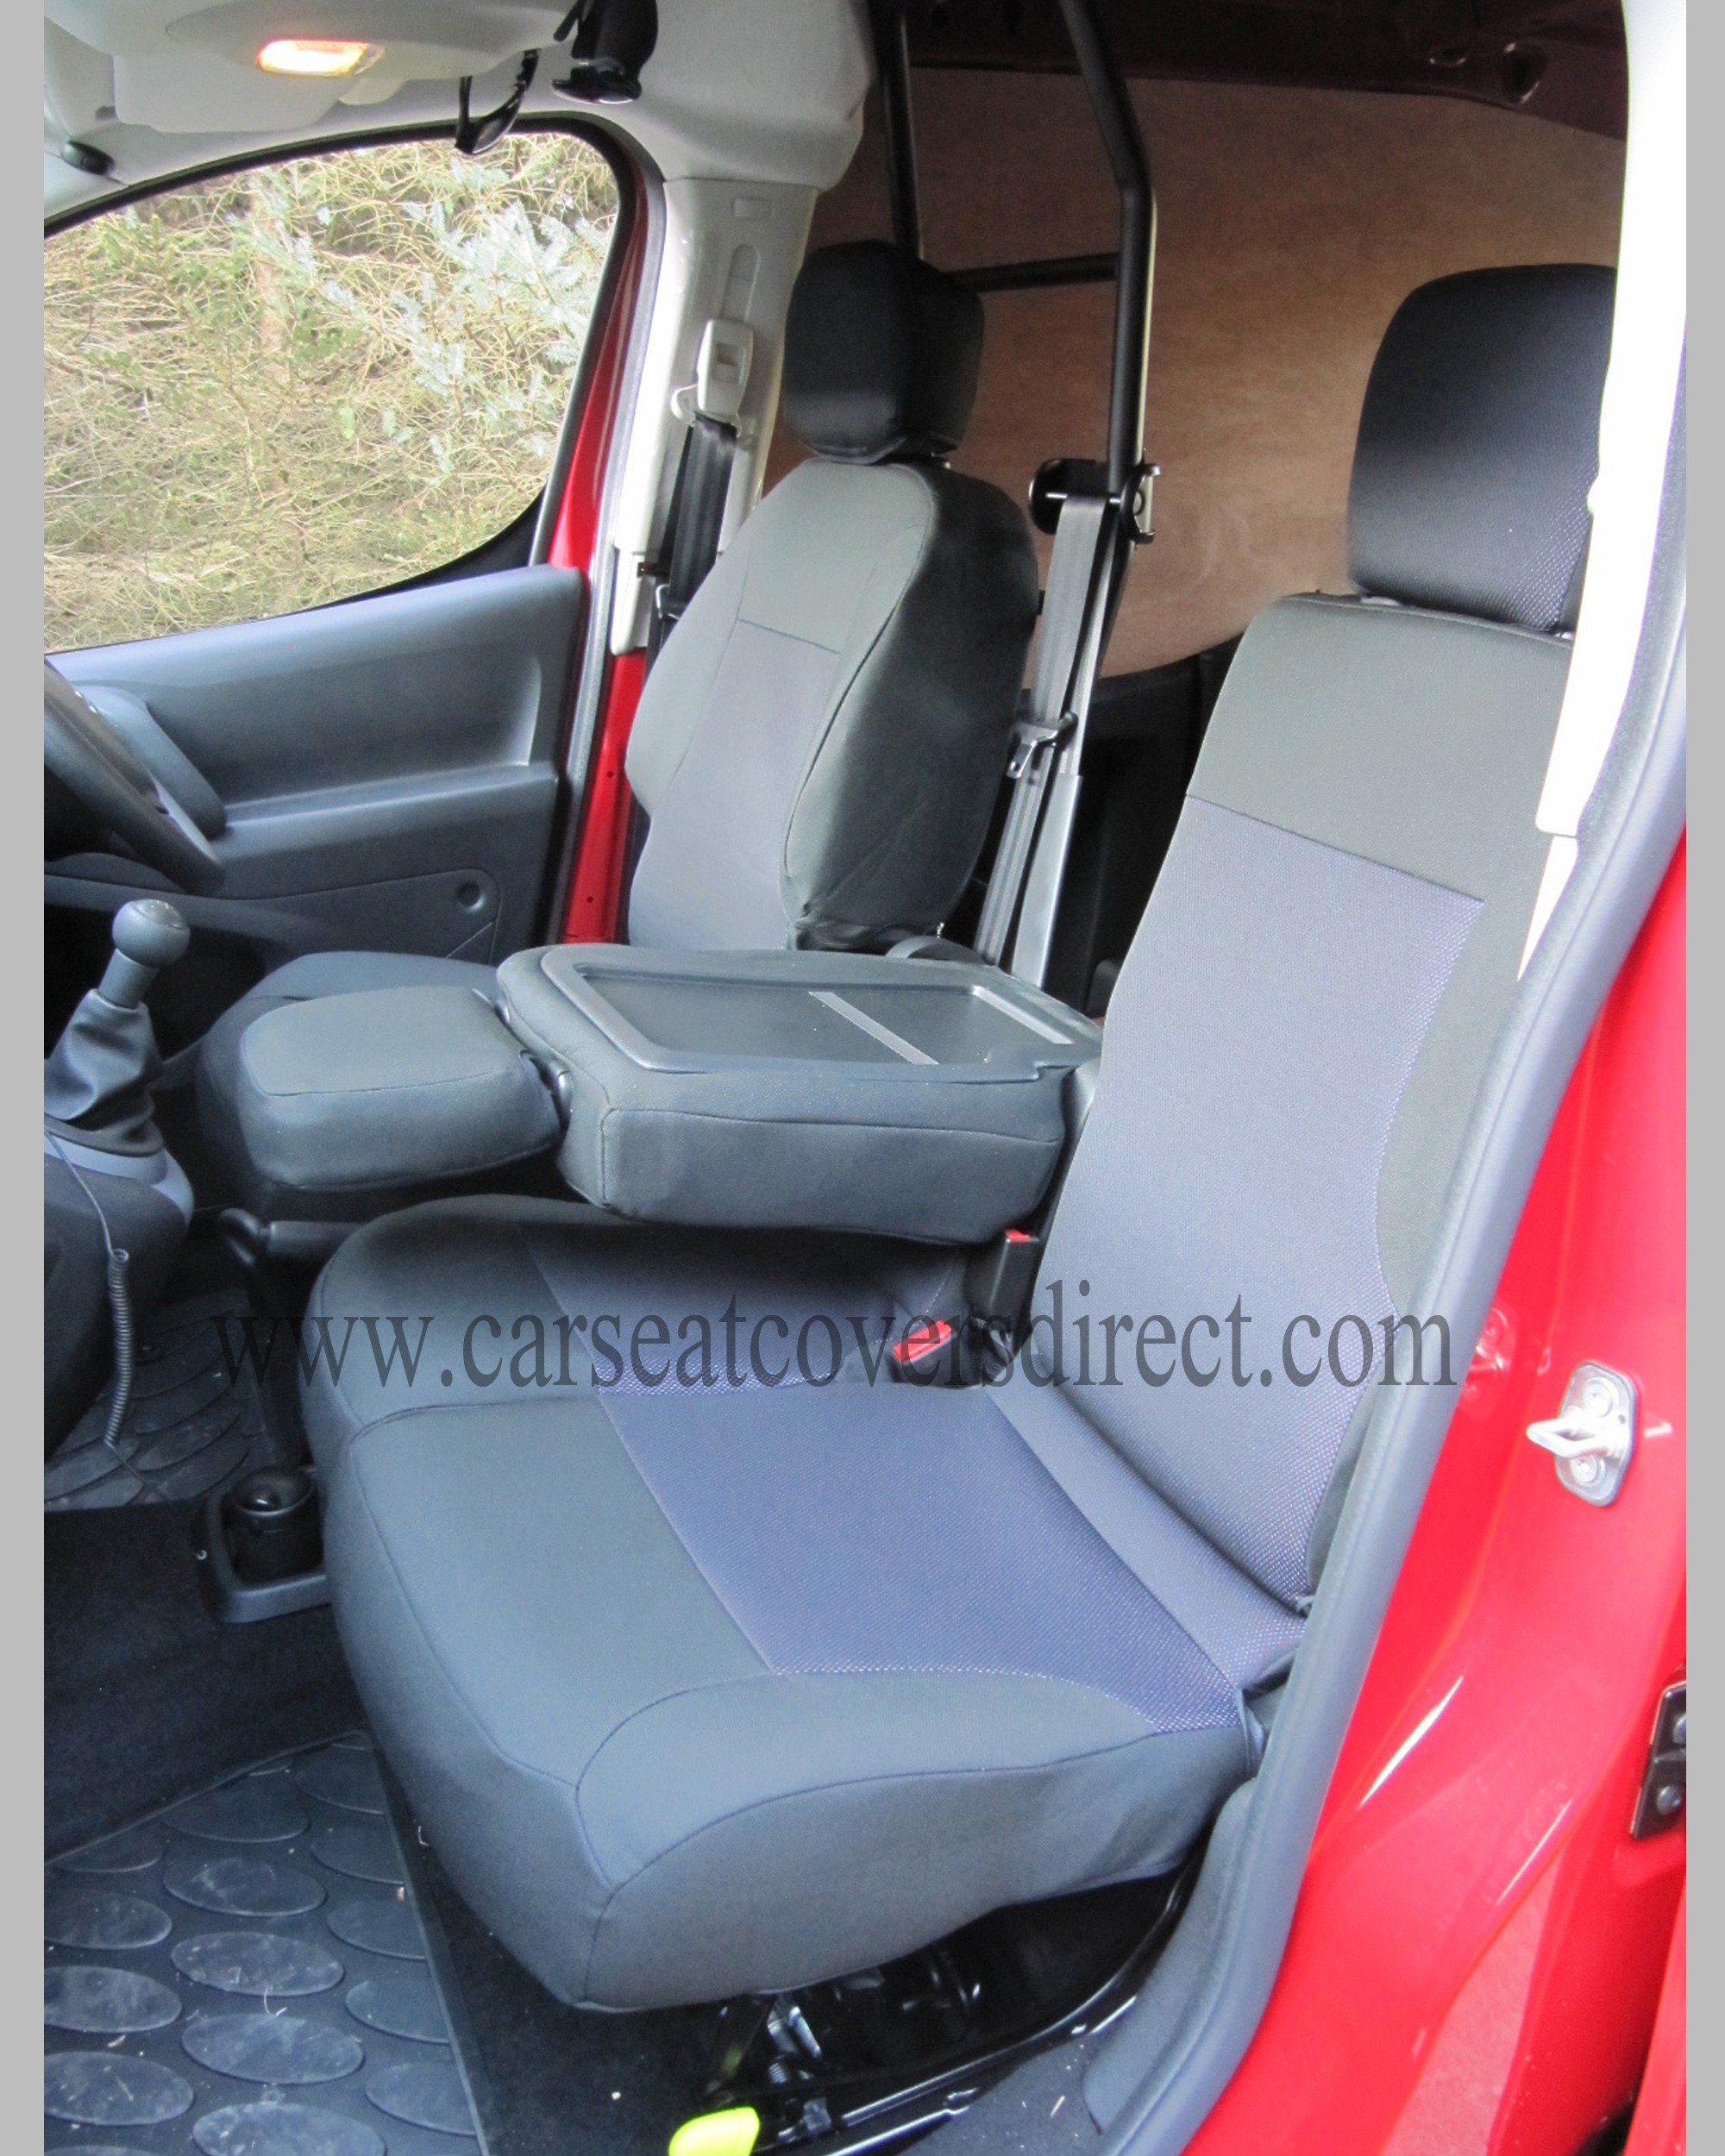 CITROEN BERLINGO Cloth seat covers